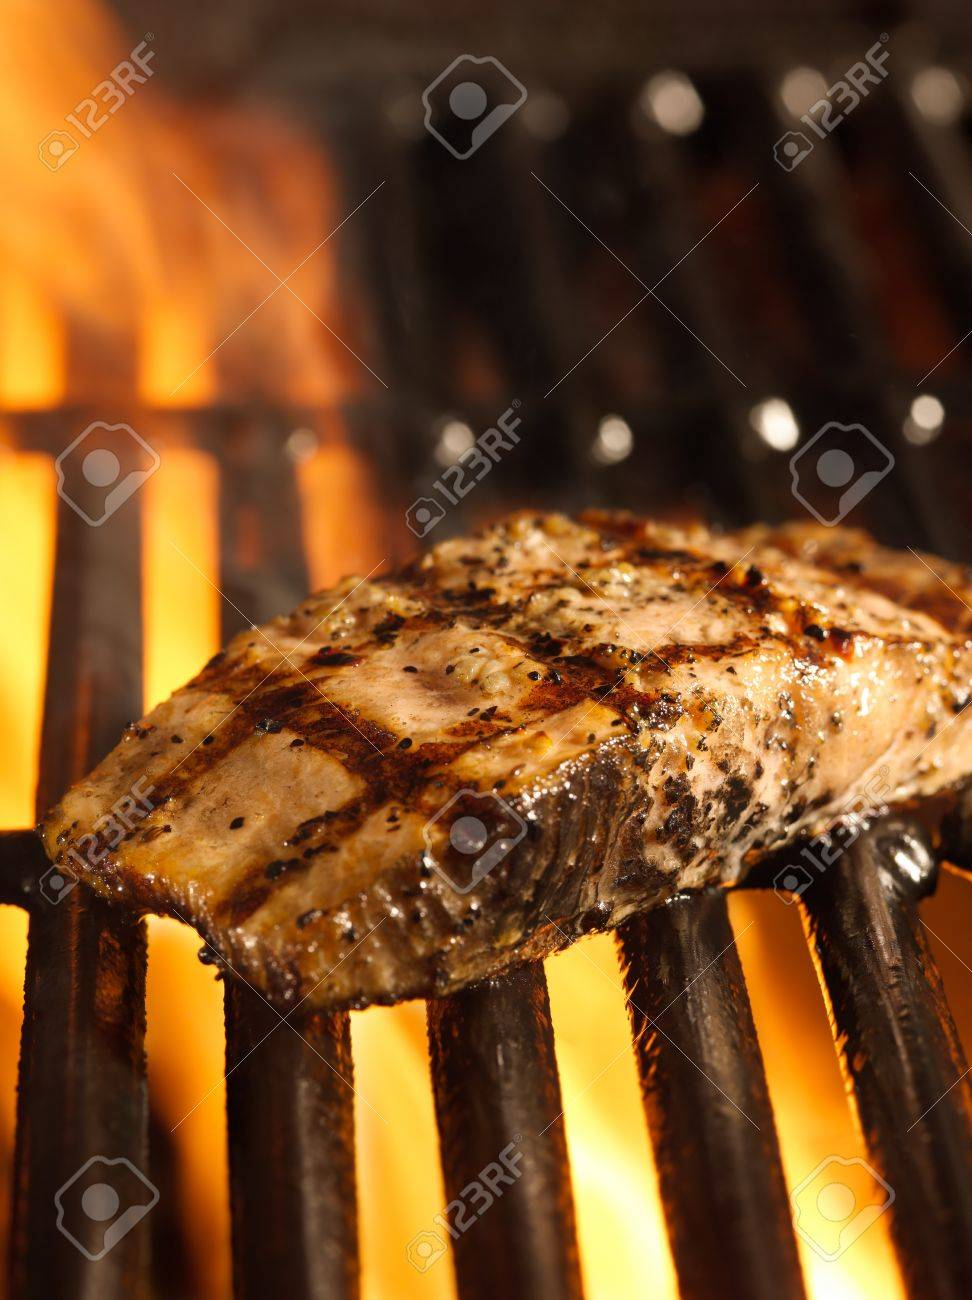 salmon fillet on the grill with flames Stock Photo - 14941004